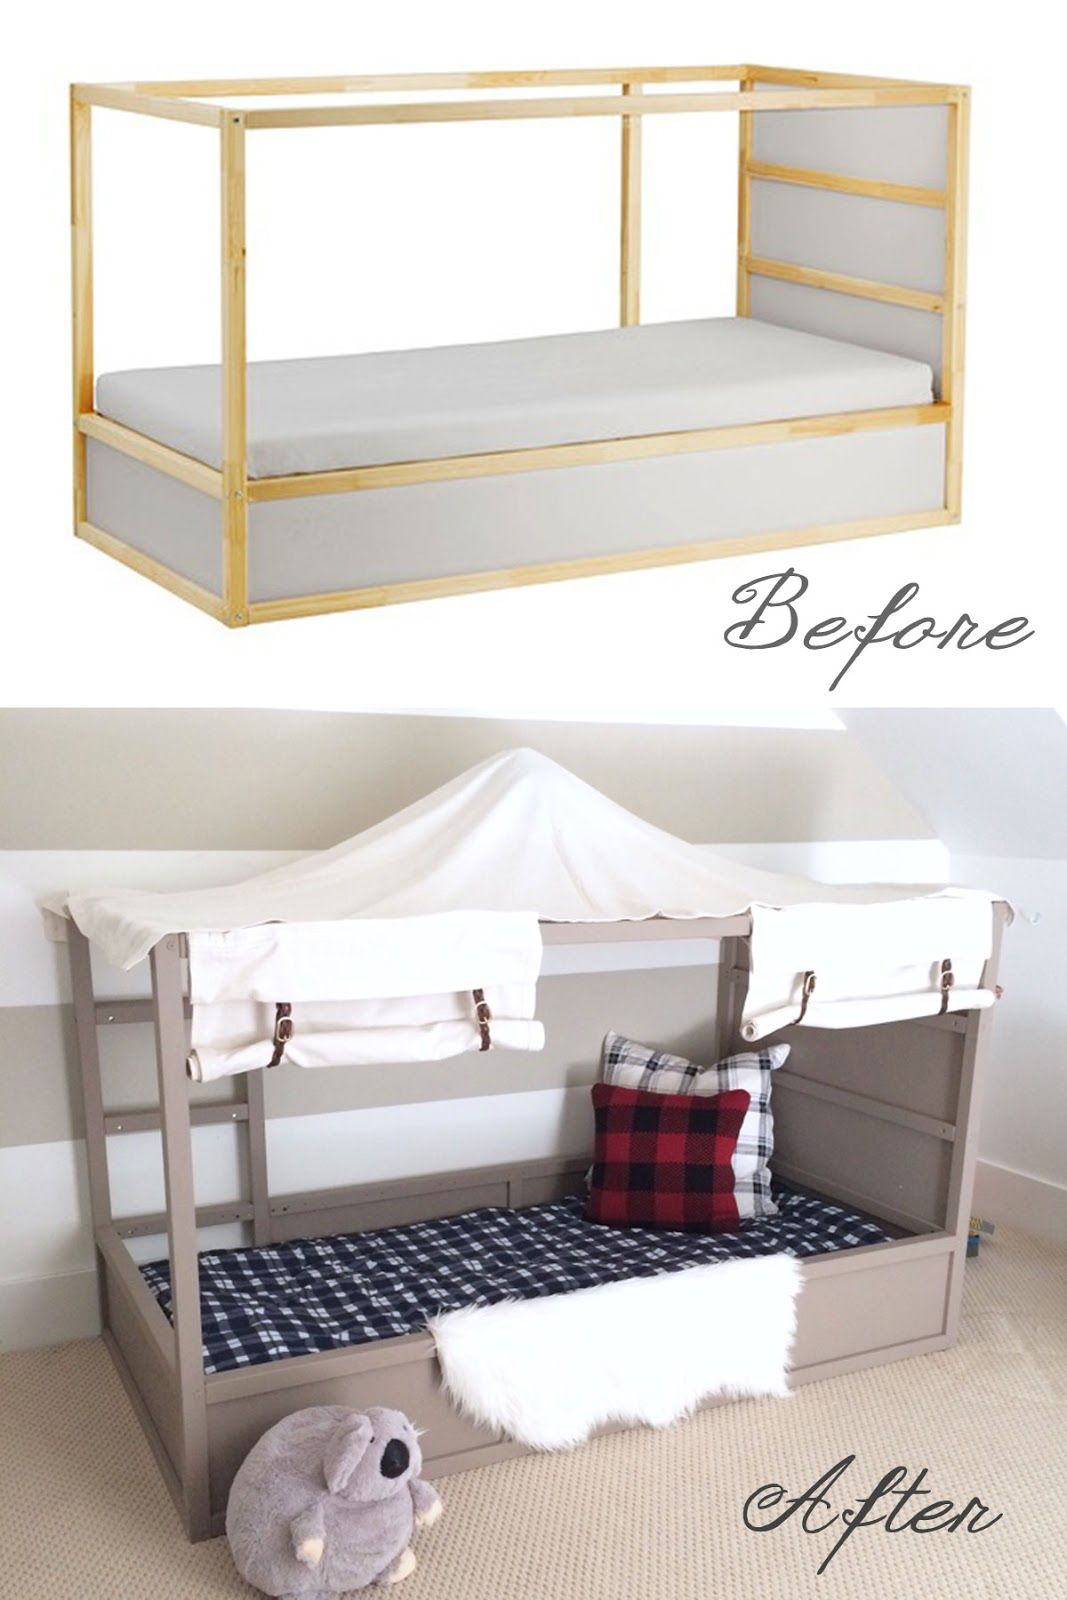 ikea kura bed hack diy boy canopy bed kinderzimmer kinderzimmer ideen und kinderbetten. Black Bedroom Furniture Sets. Home Design Ideas